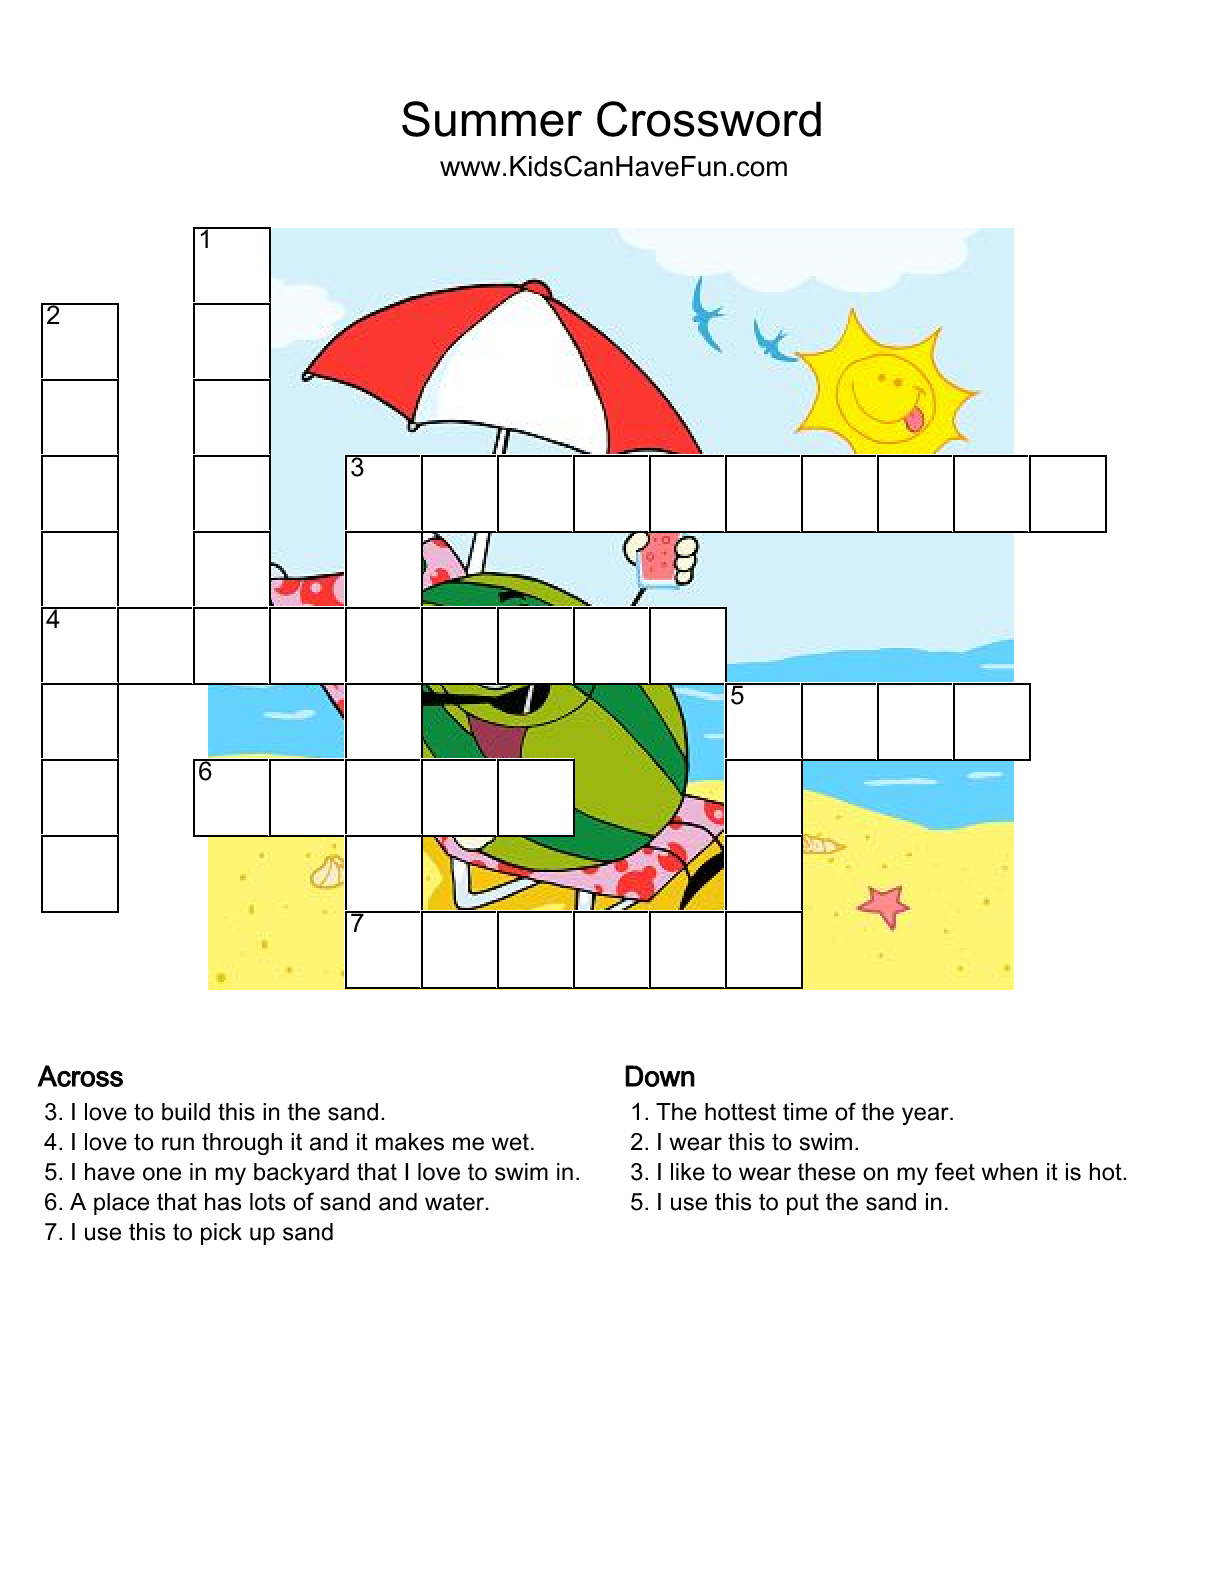 Summer Crossword Puzzle Kidscanhavefun Crosswordshtm